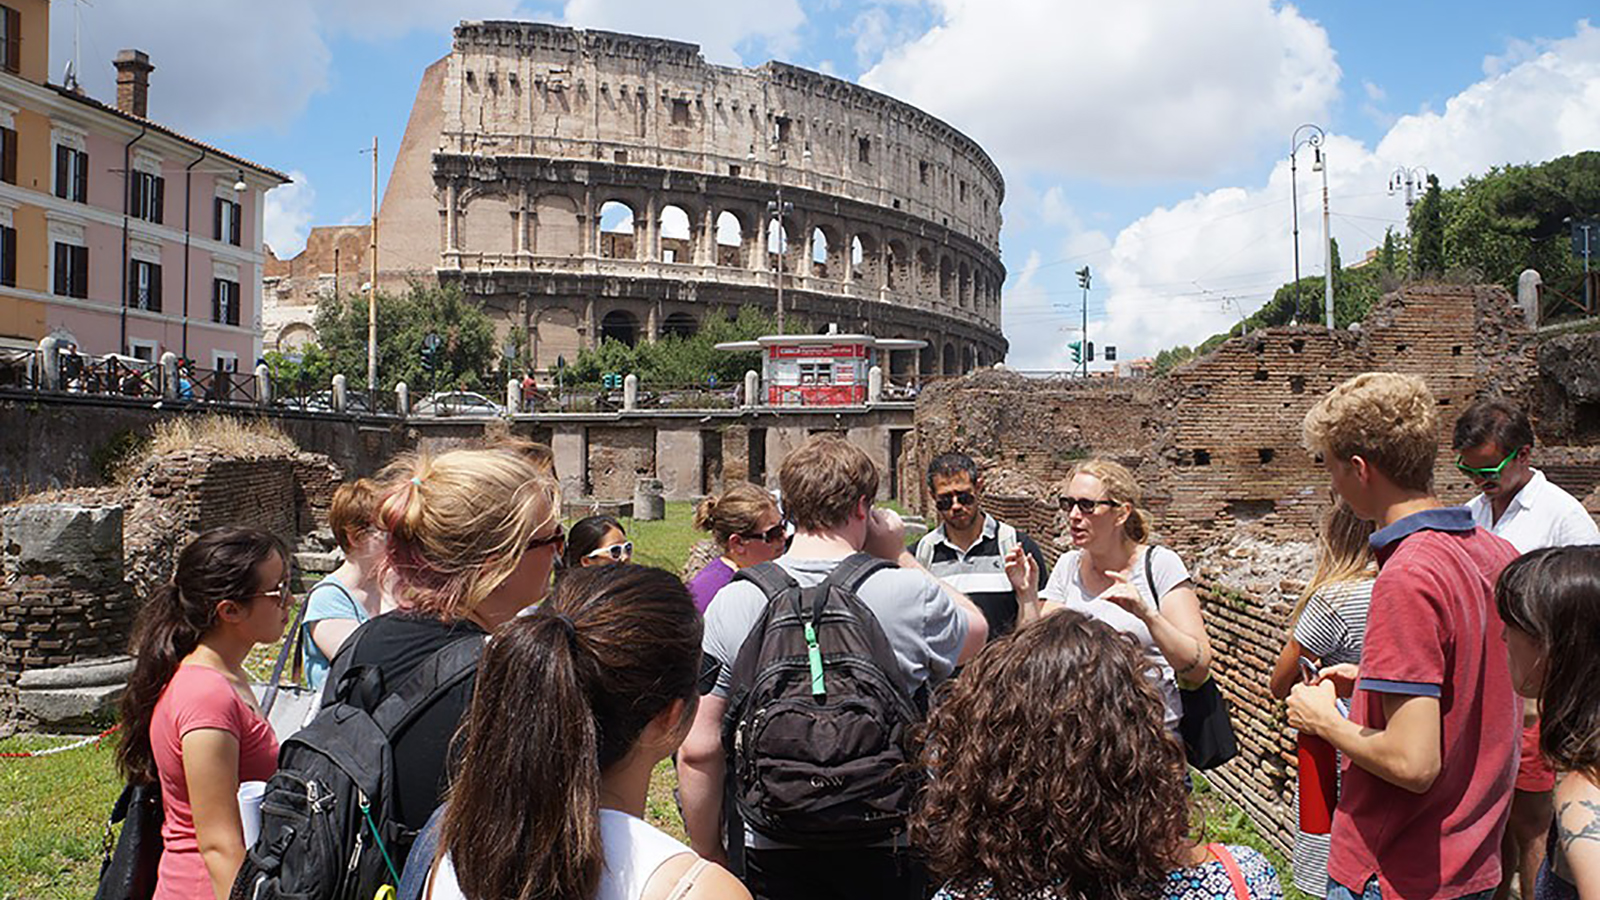 Participants in the Classical Summer School receive a lecture outside the Roman Colosseum